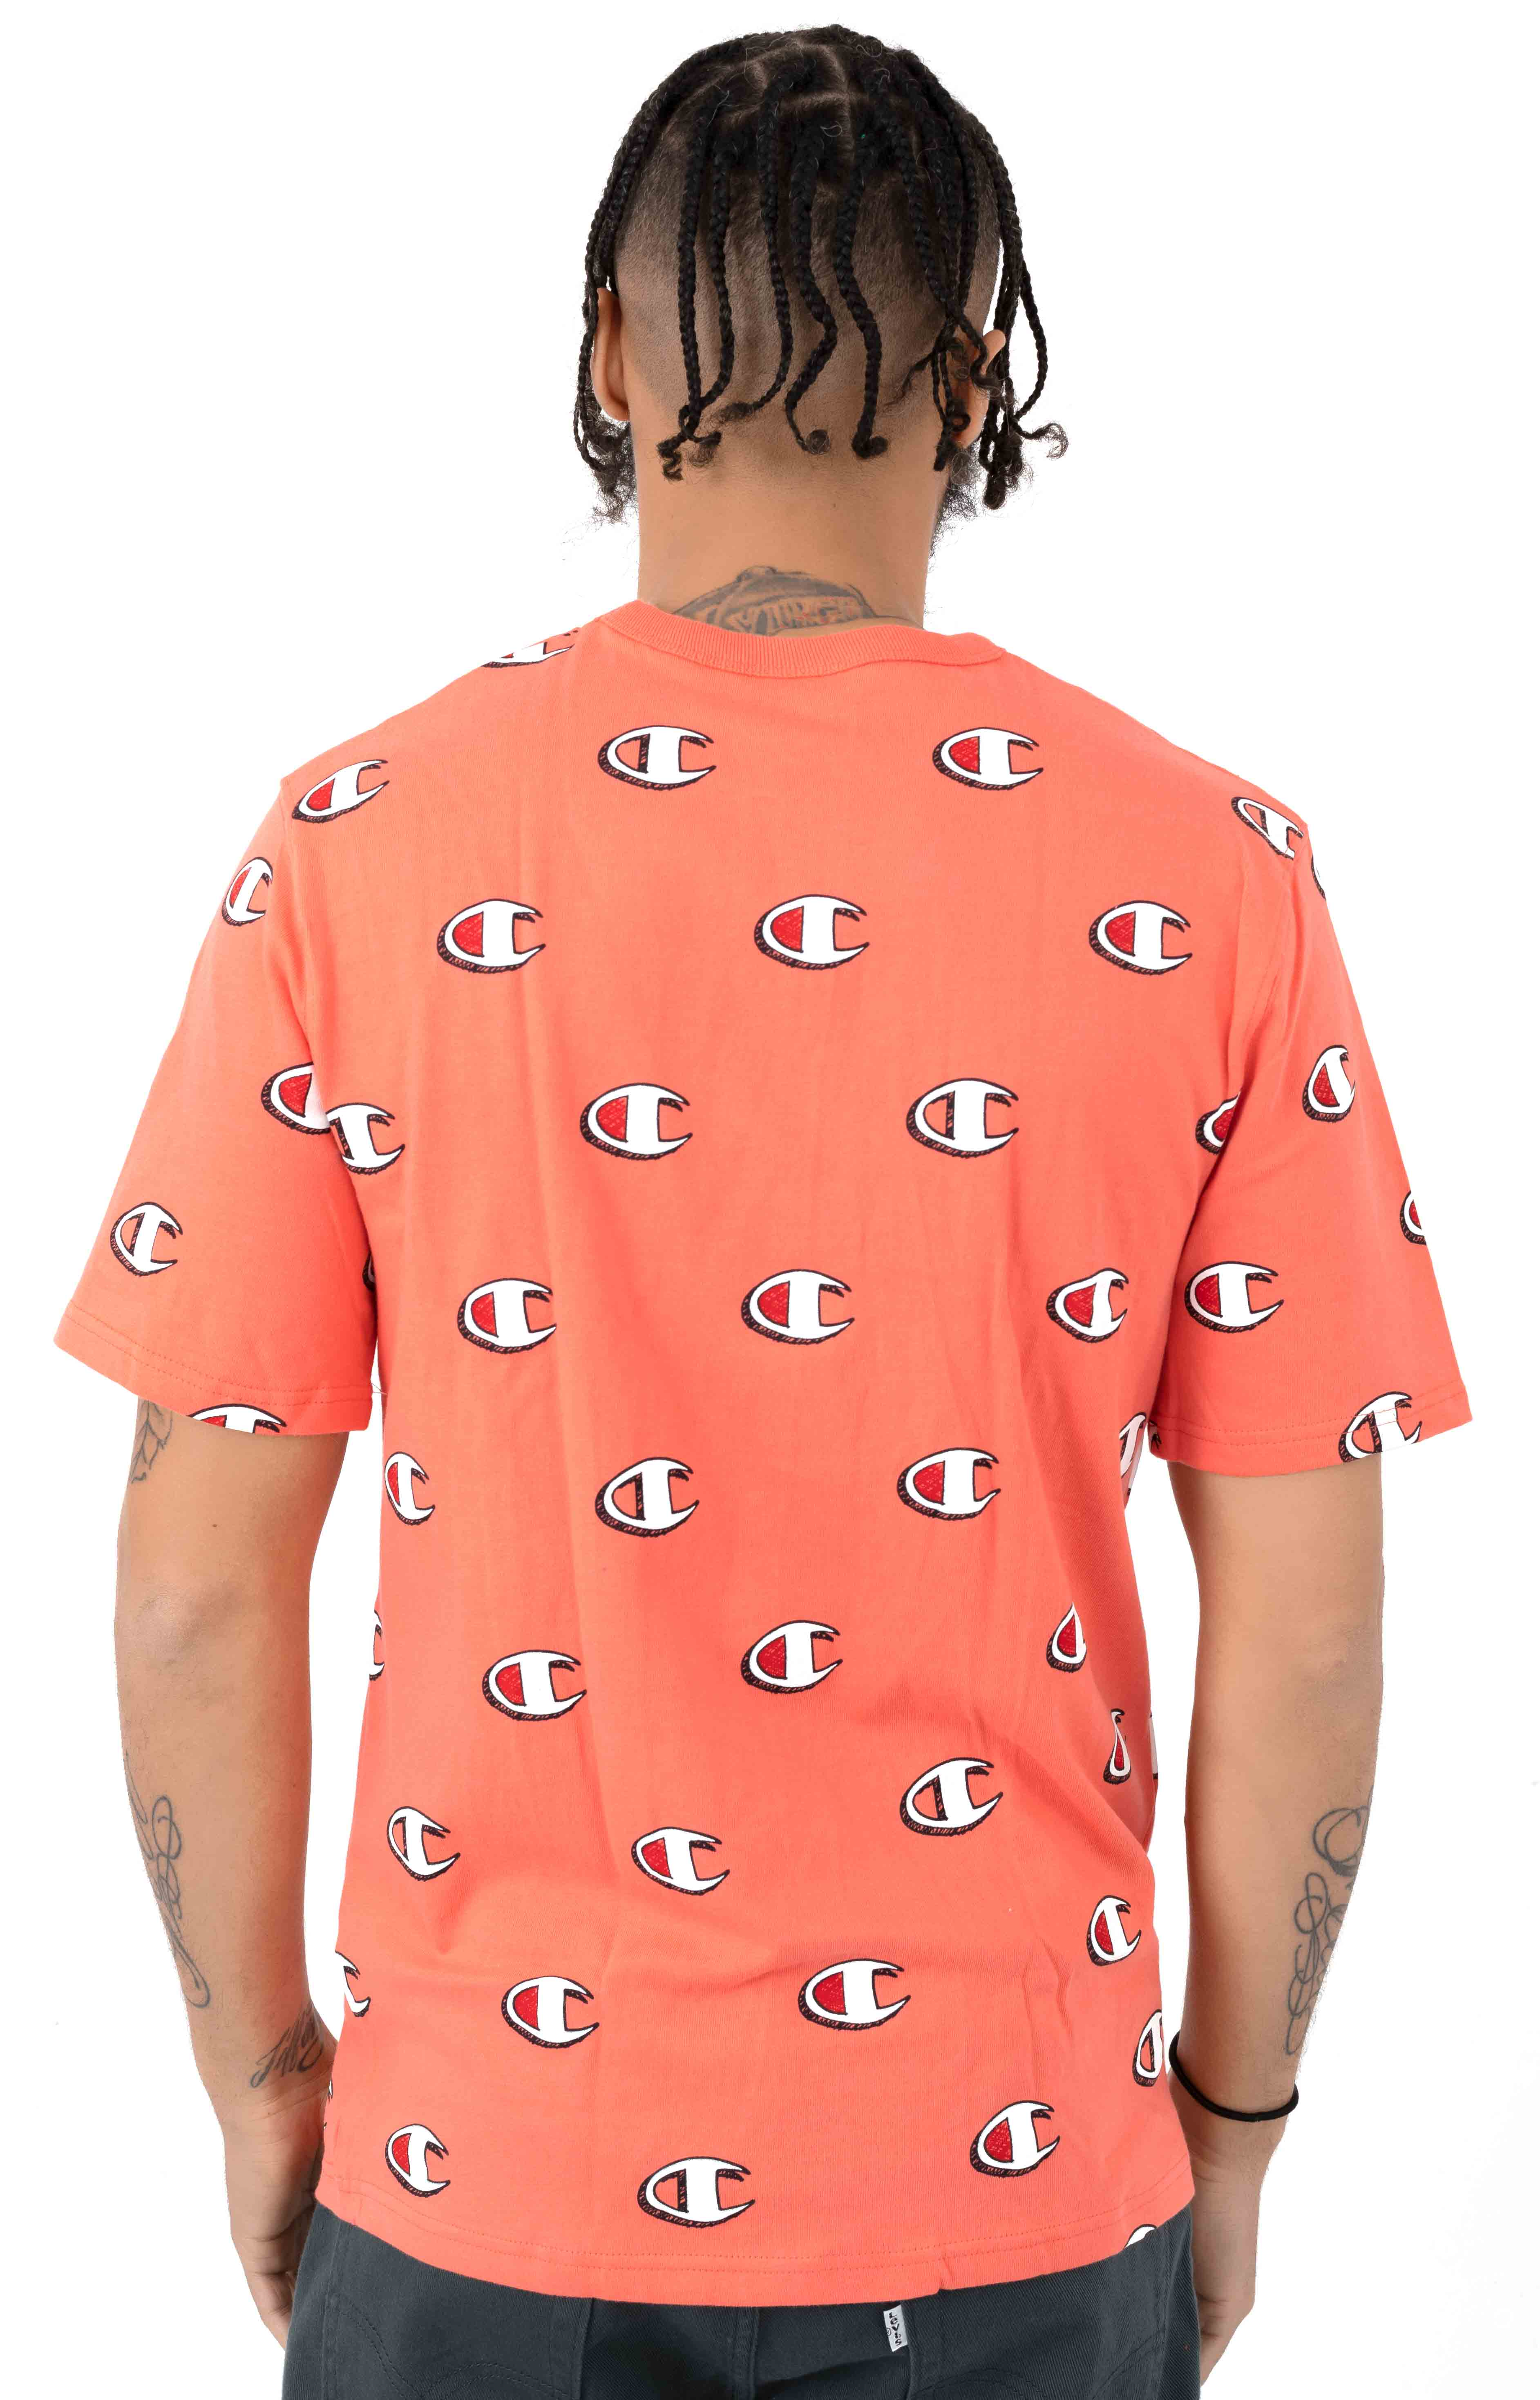 Heritage All Over Scribble Logo T-Shirt - Groovy Papaya 3